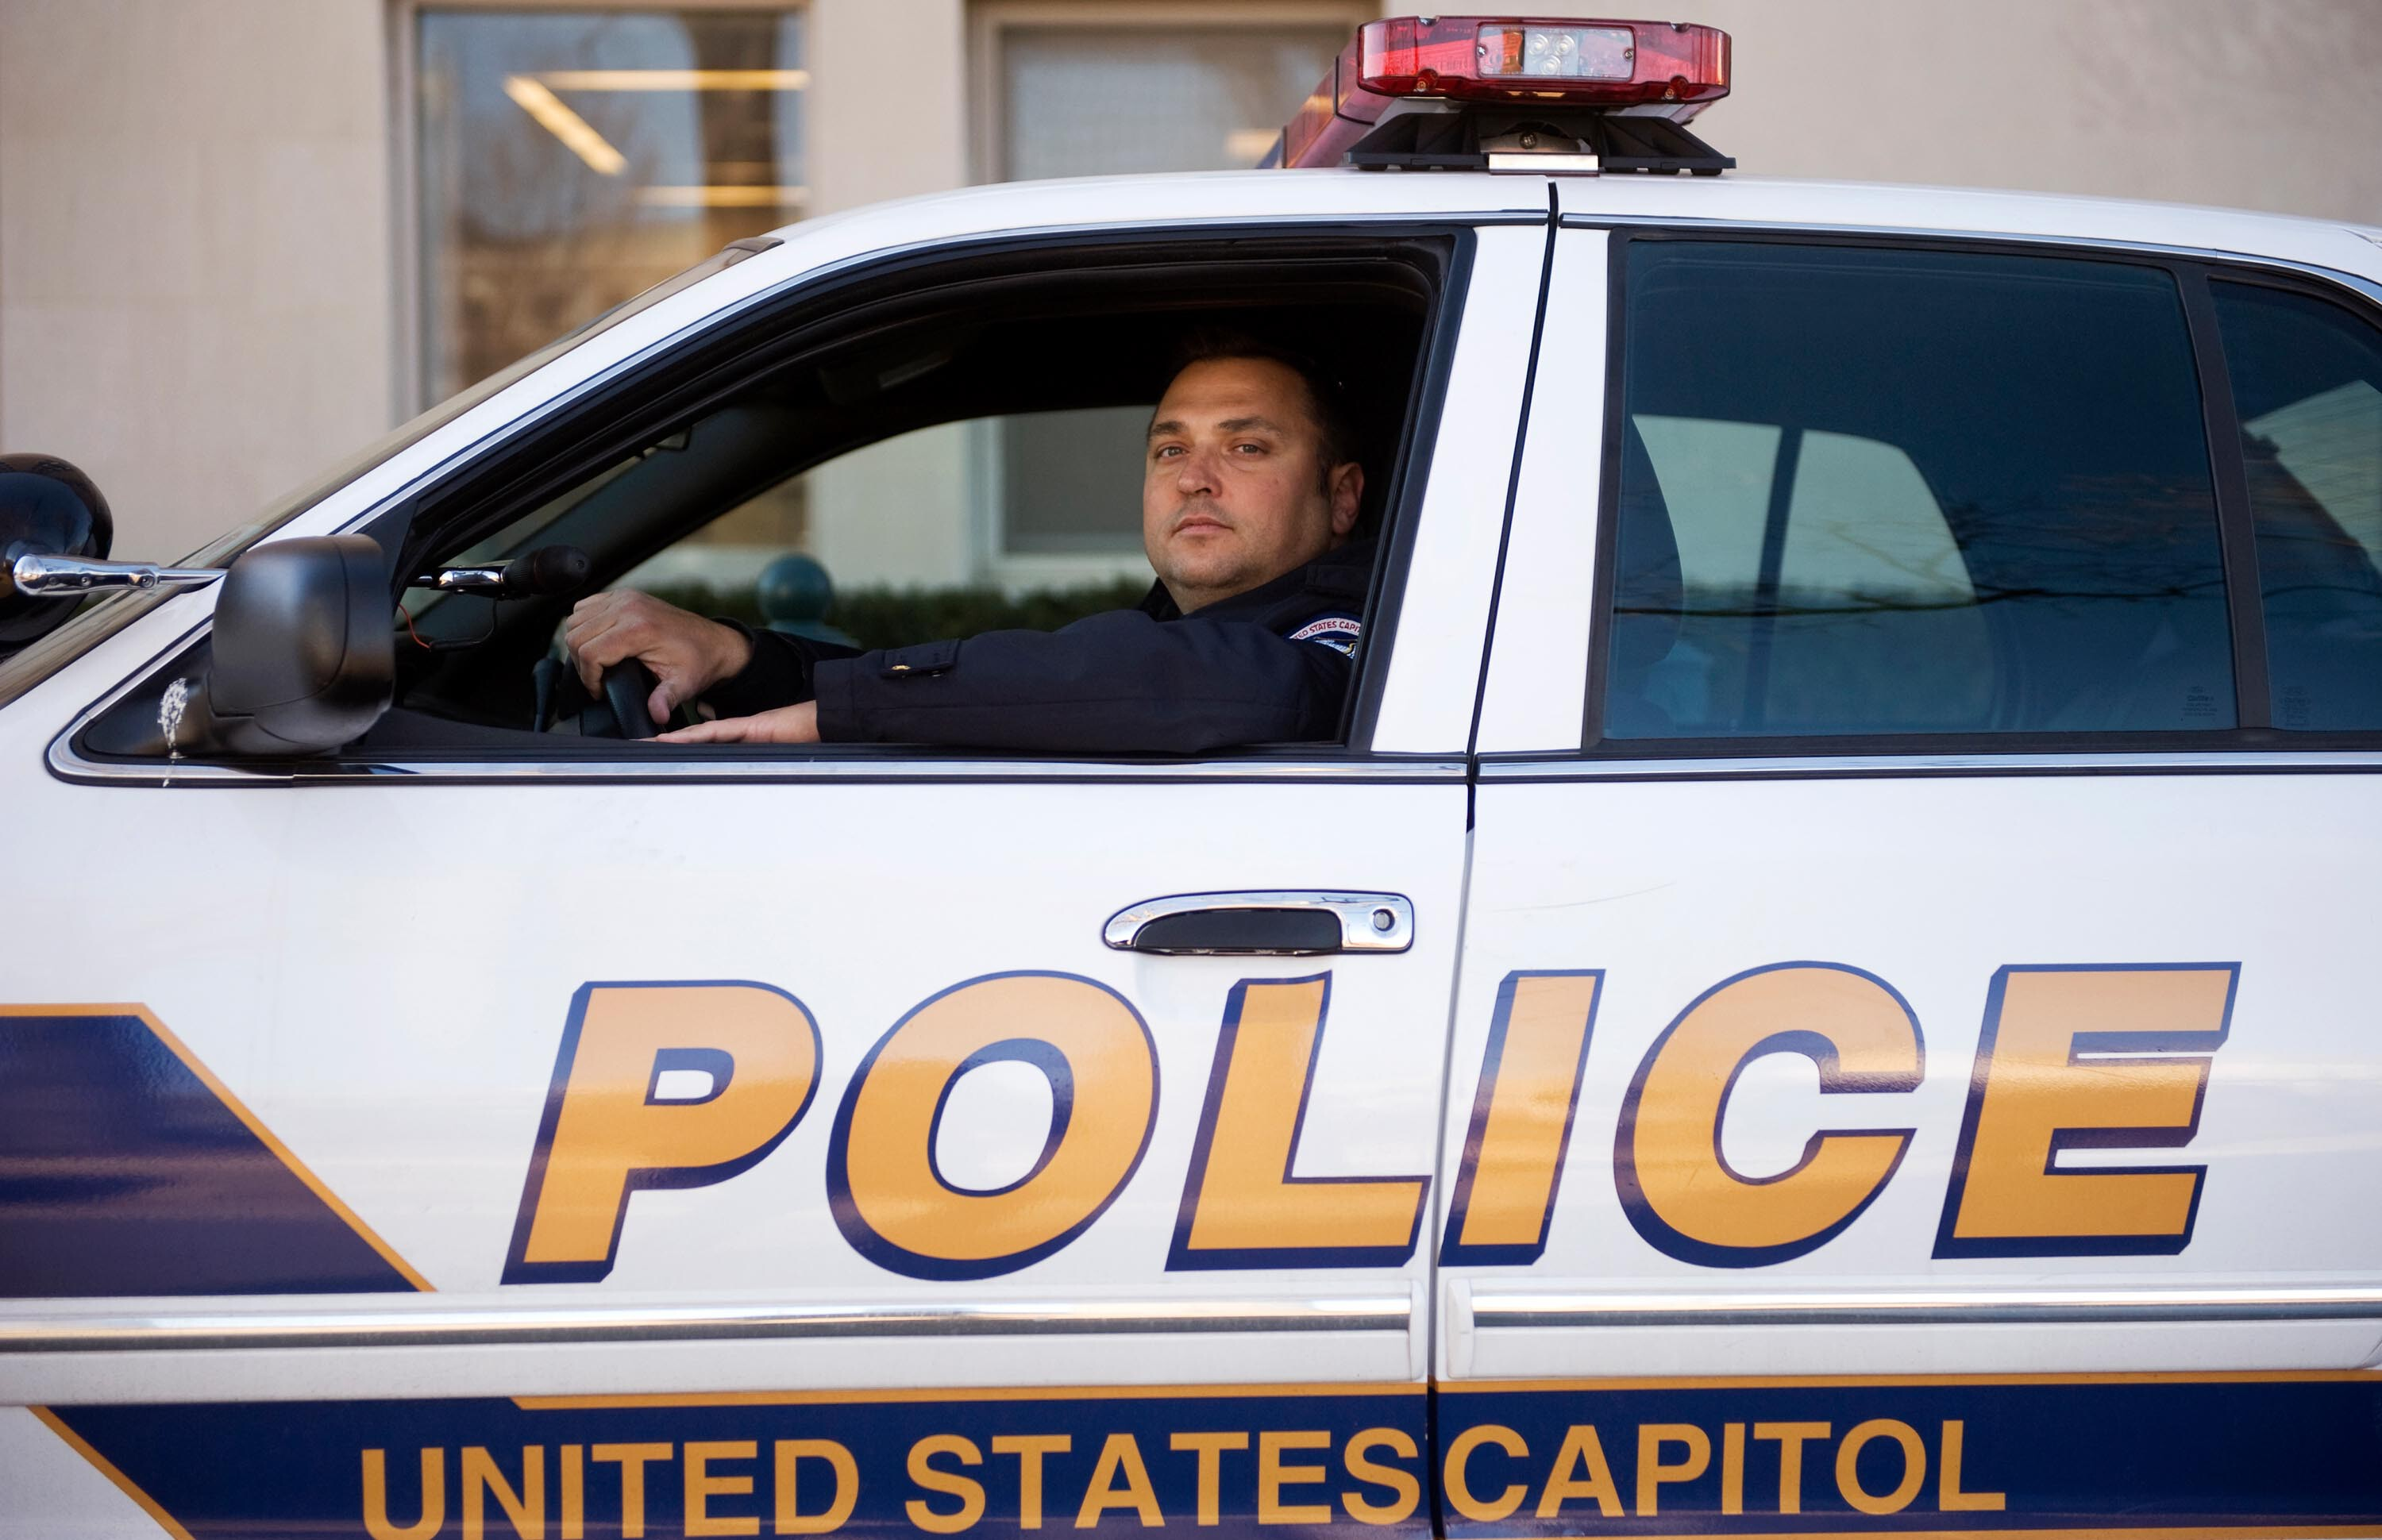 US Capitol Police officer pleads not guilty to obstruction of justice charges in connection with January 6